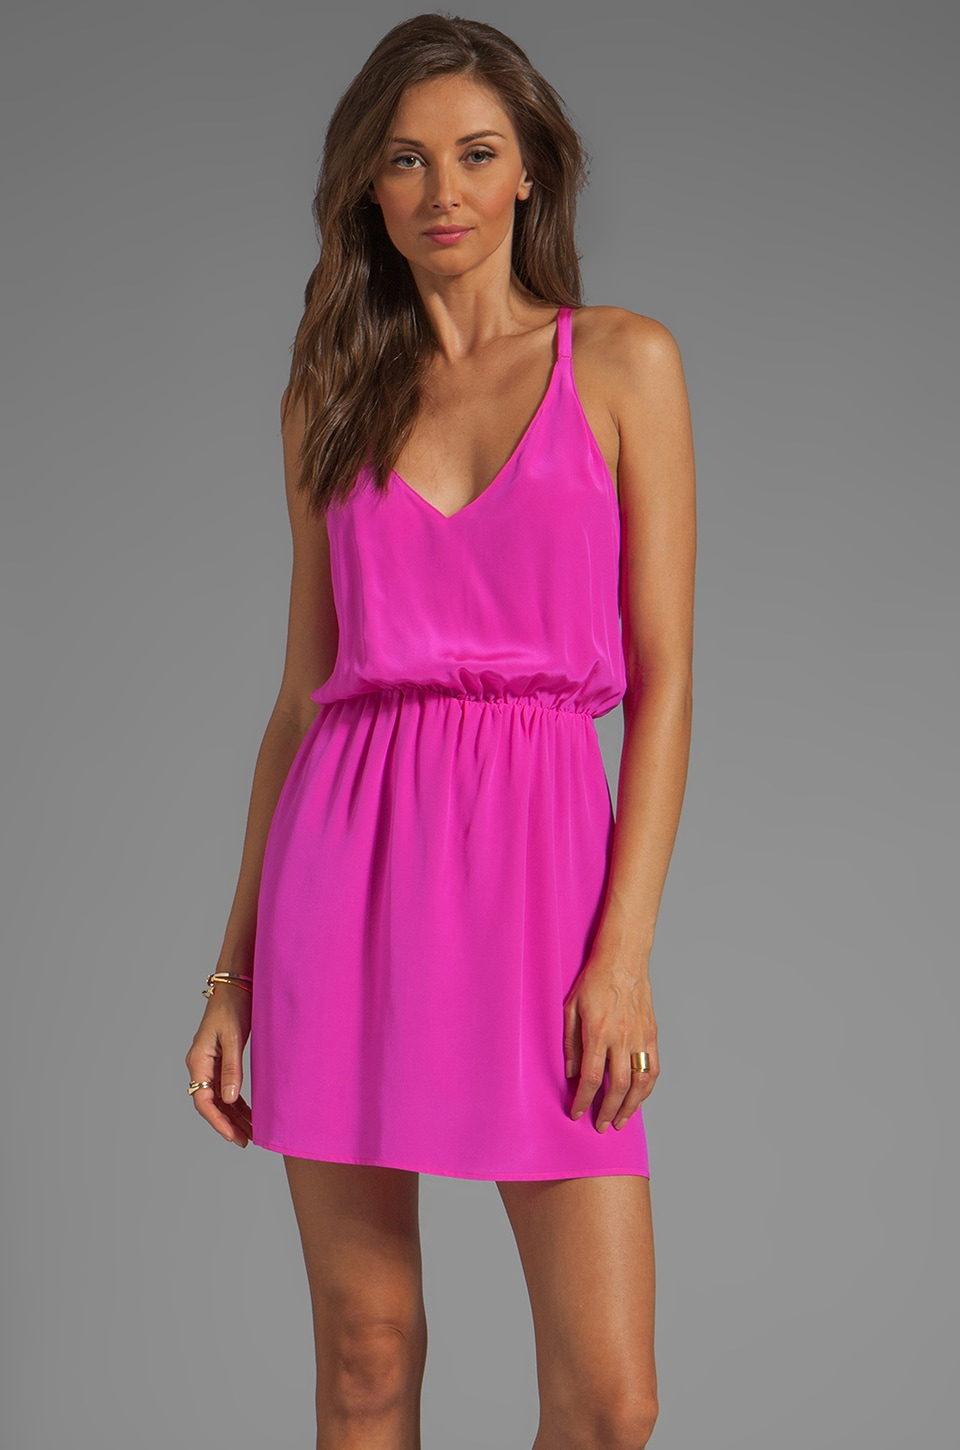 Rory Beca Soloman Overlap Back Dress in Pink Bikini